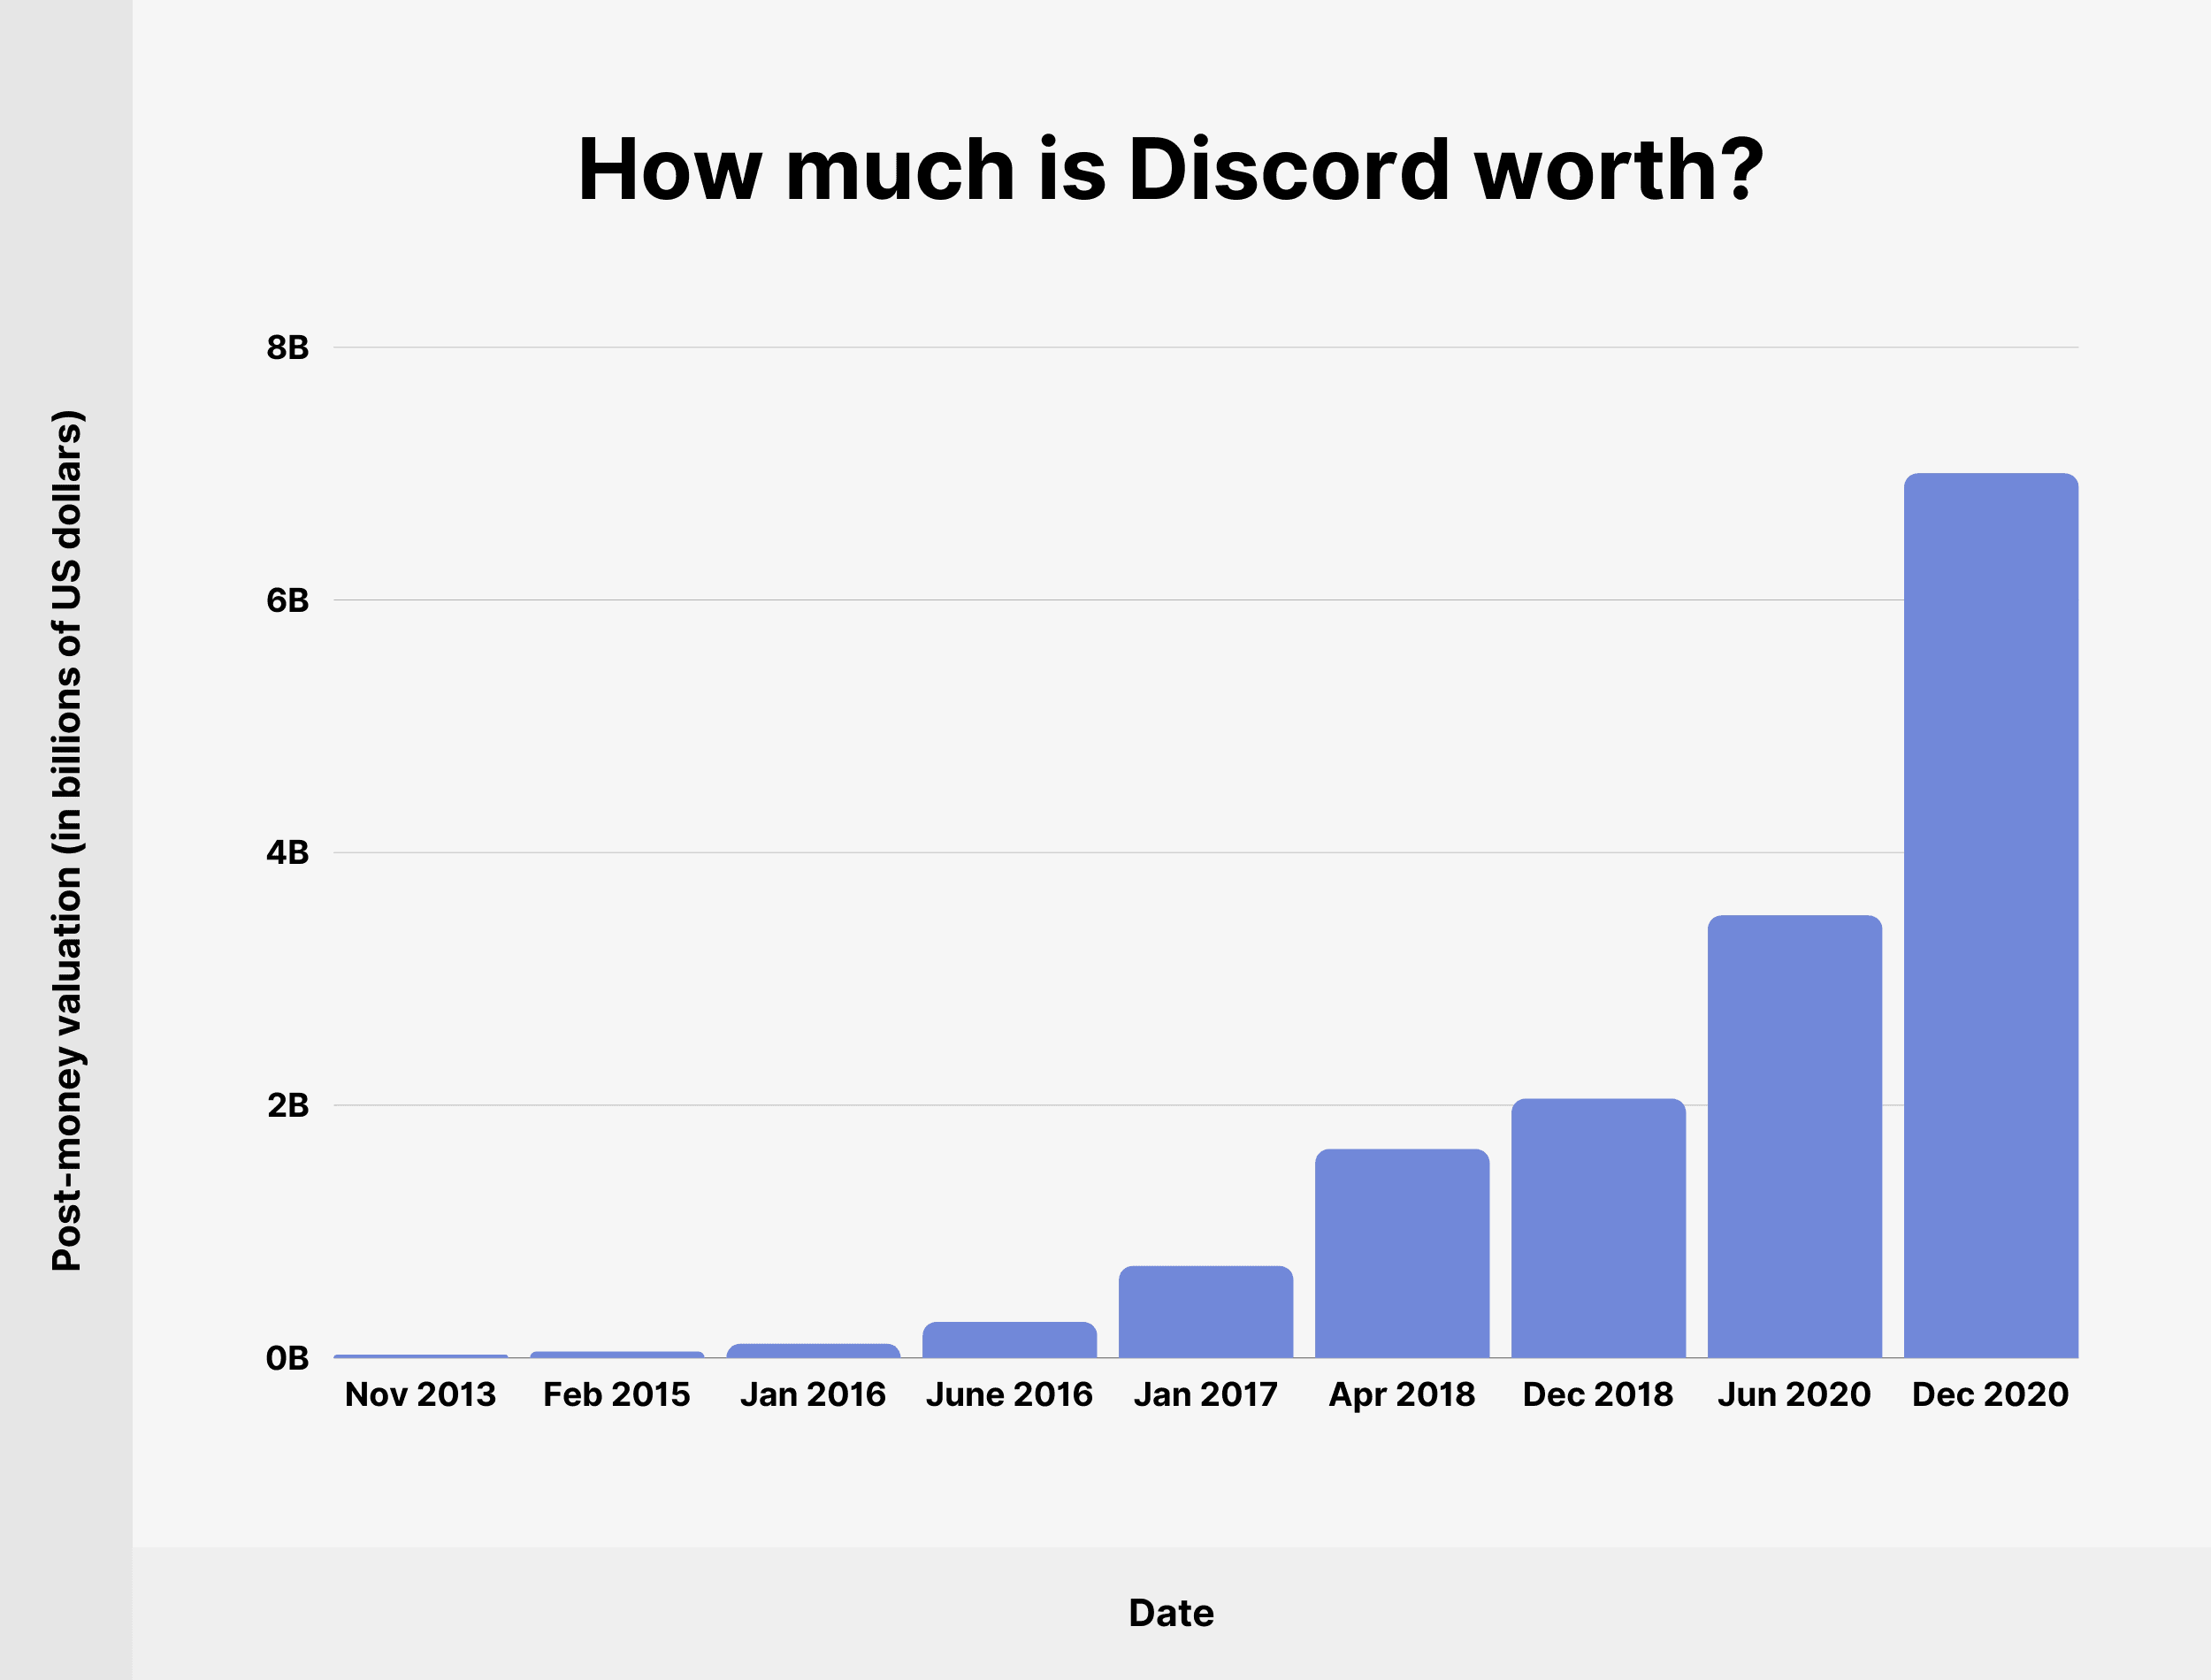 How much is Discord worth?